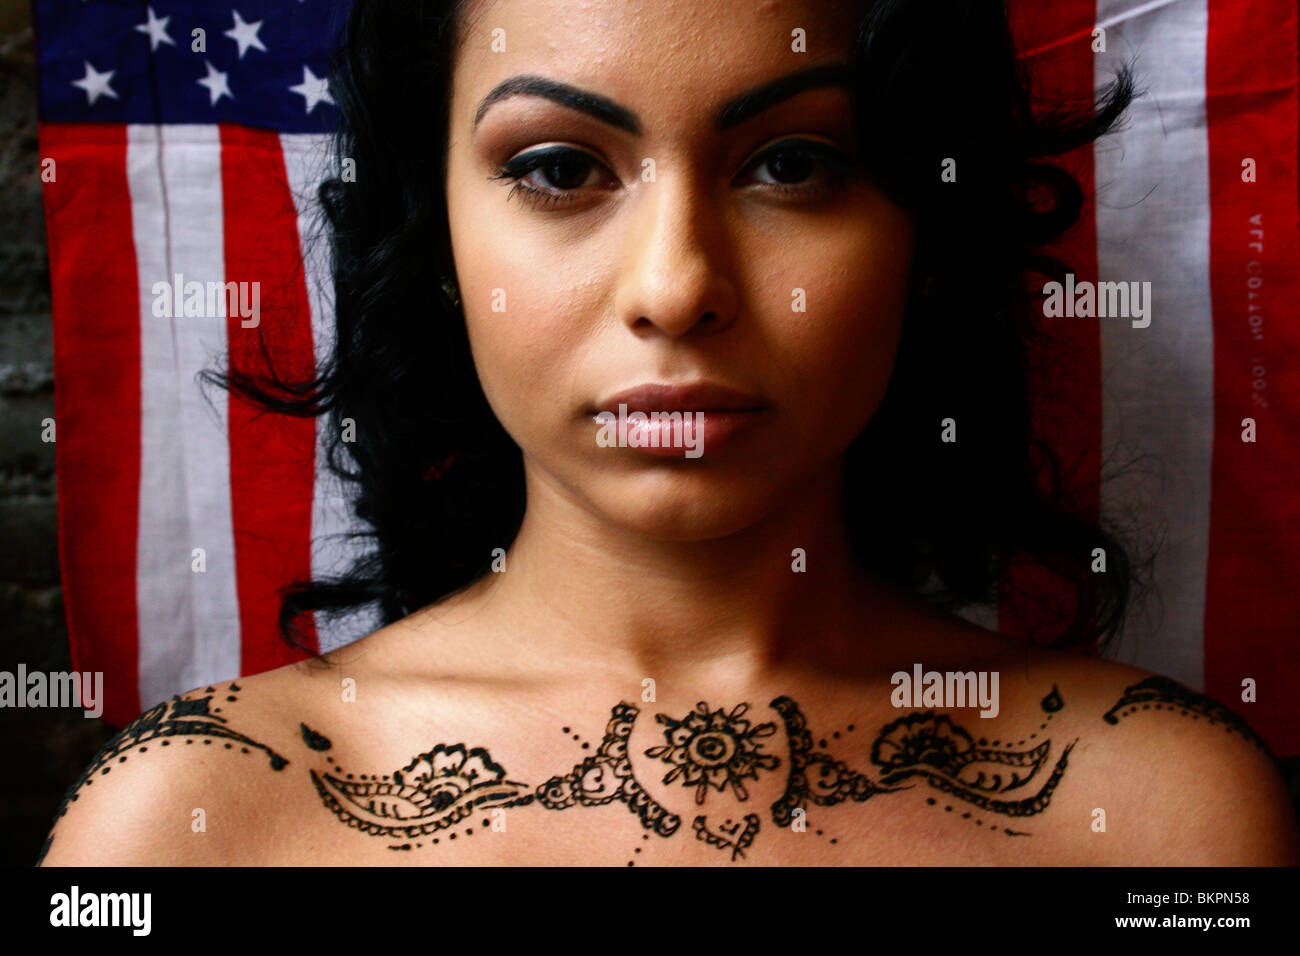 Close up portrait of woman with henna body art on her shoulders, and the American flag as the background. - Stock Image